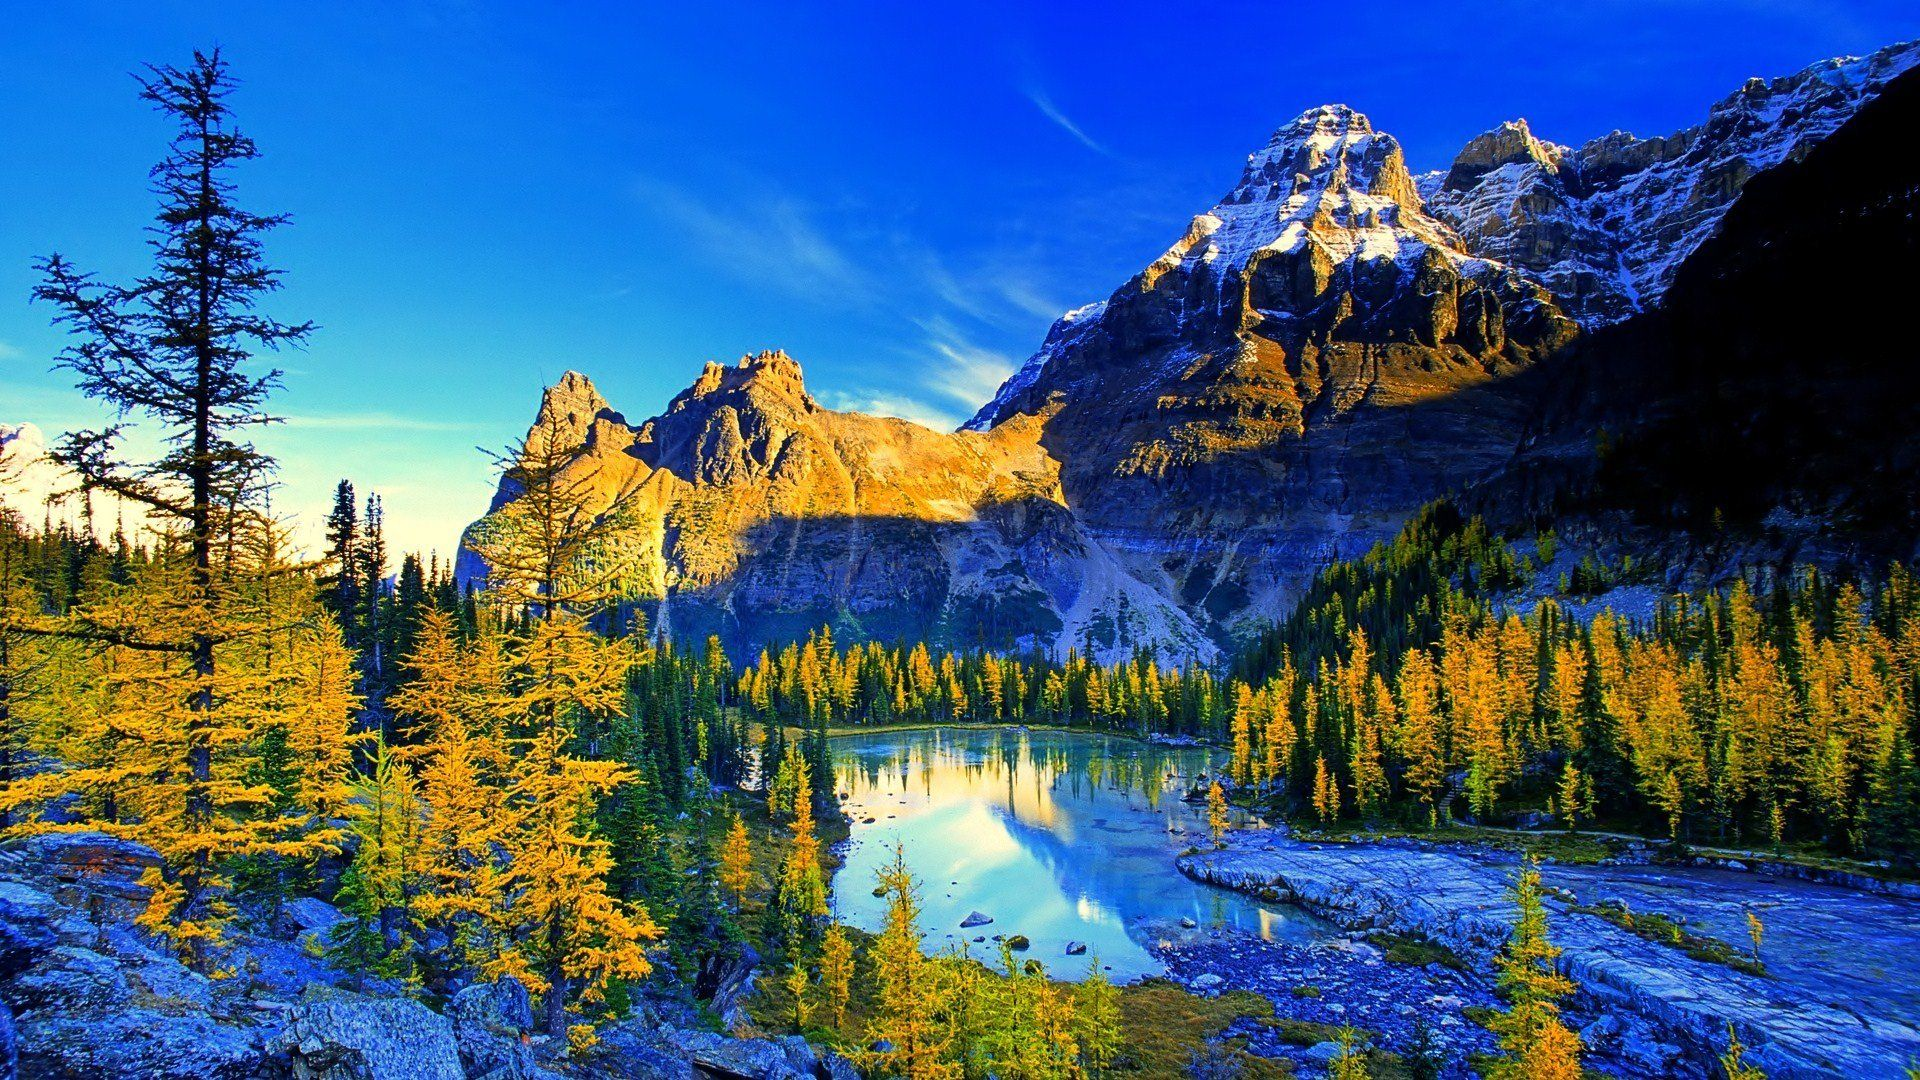 Ultra Hd Nature Wallpaper For Laptop